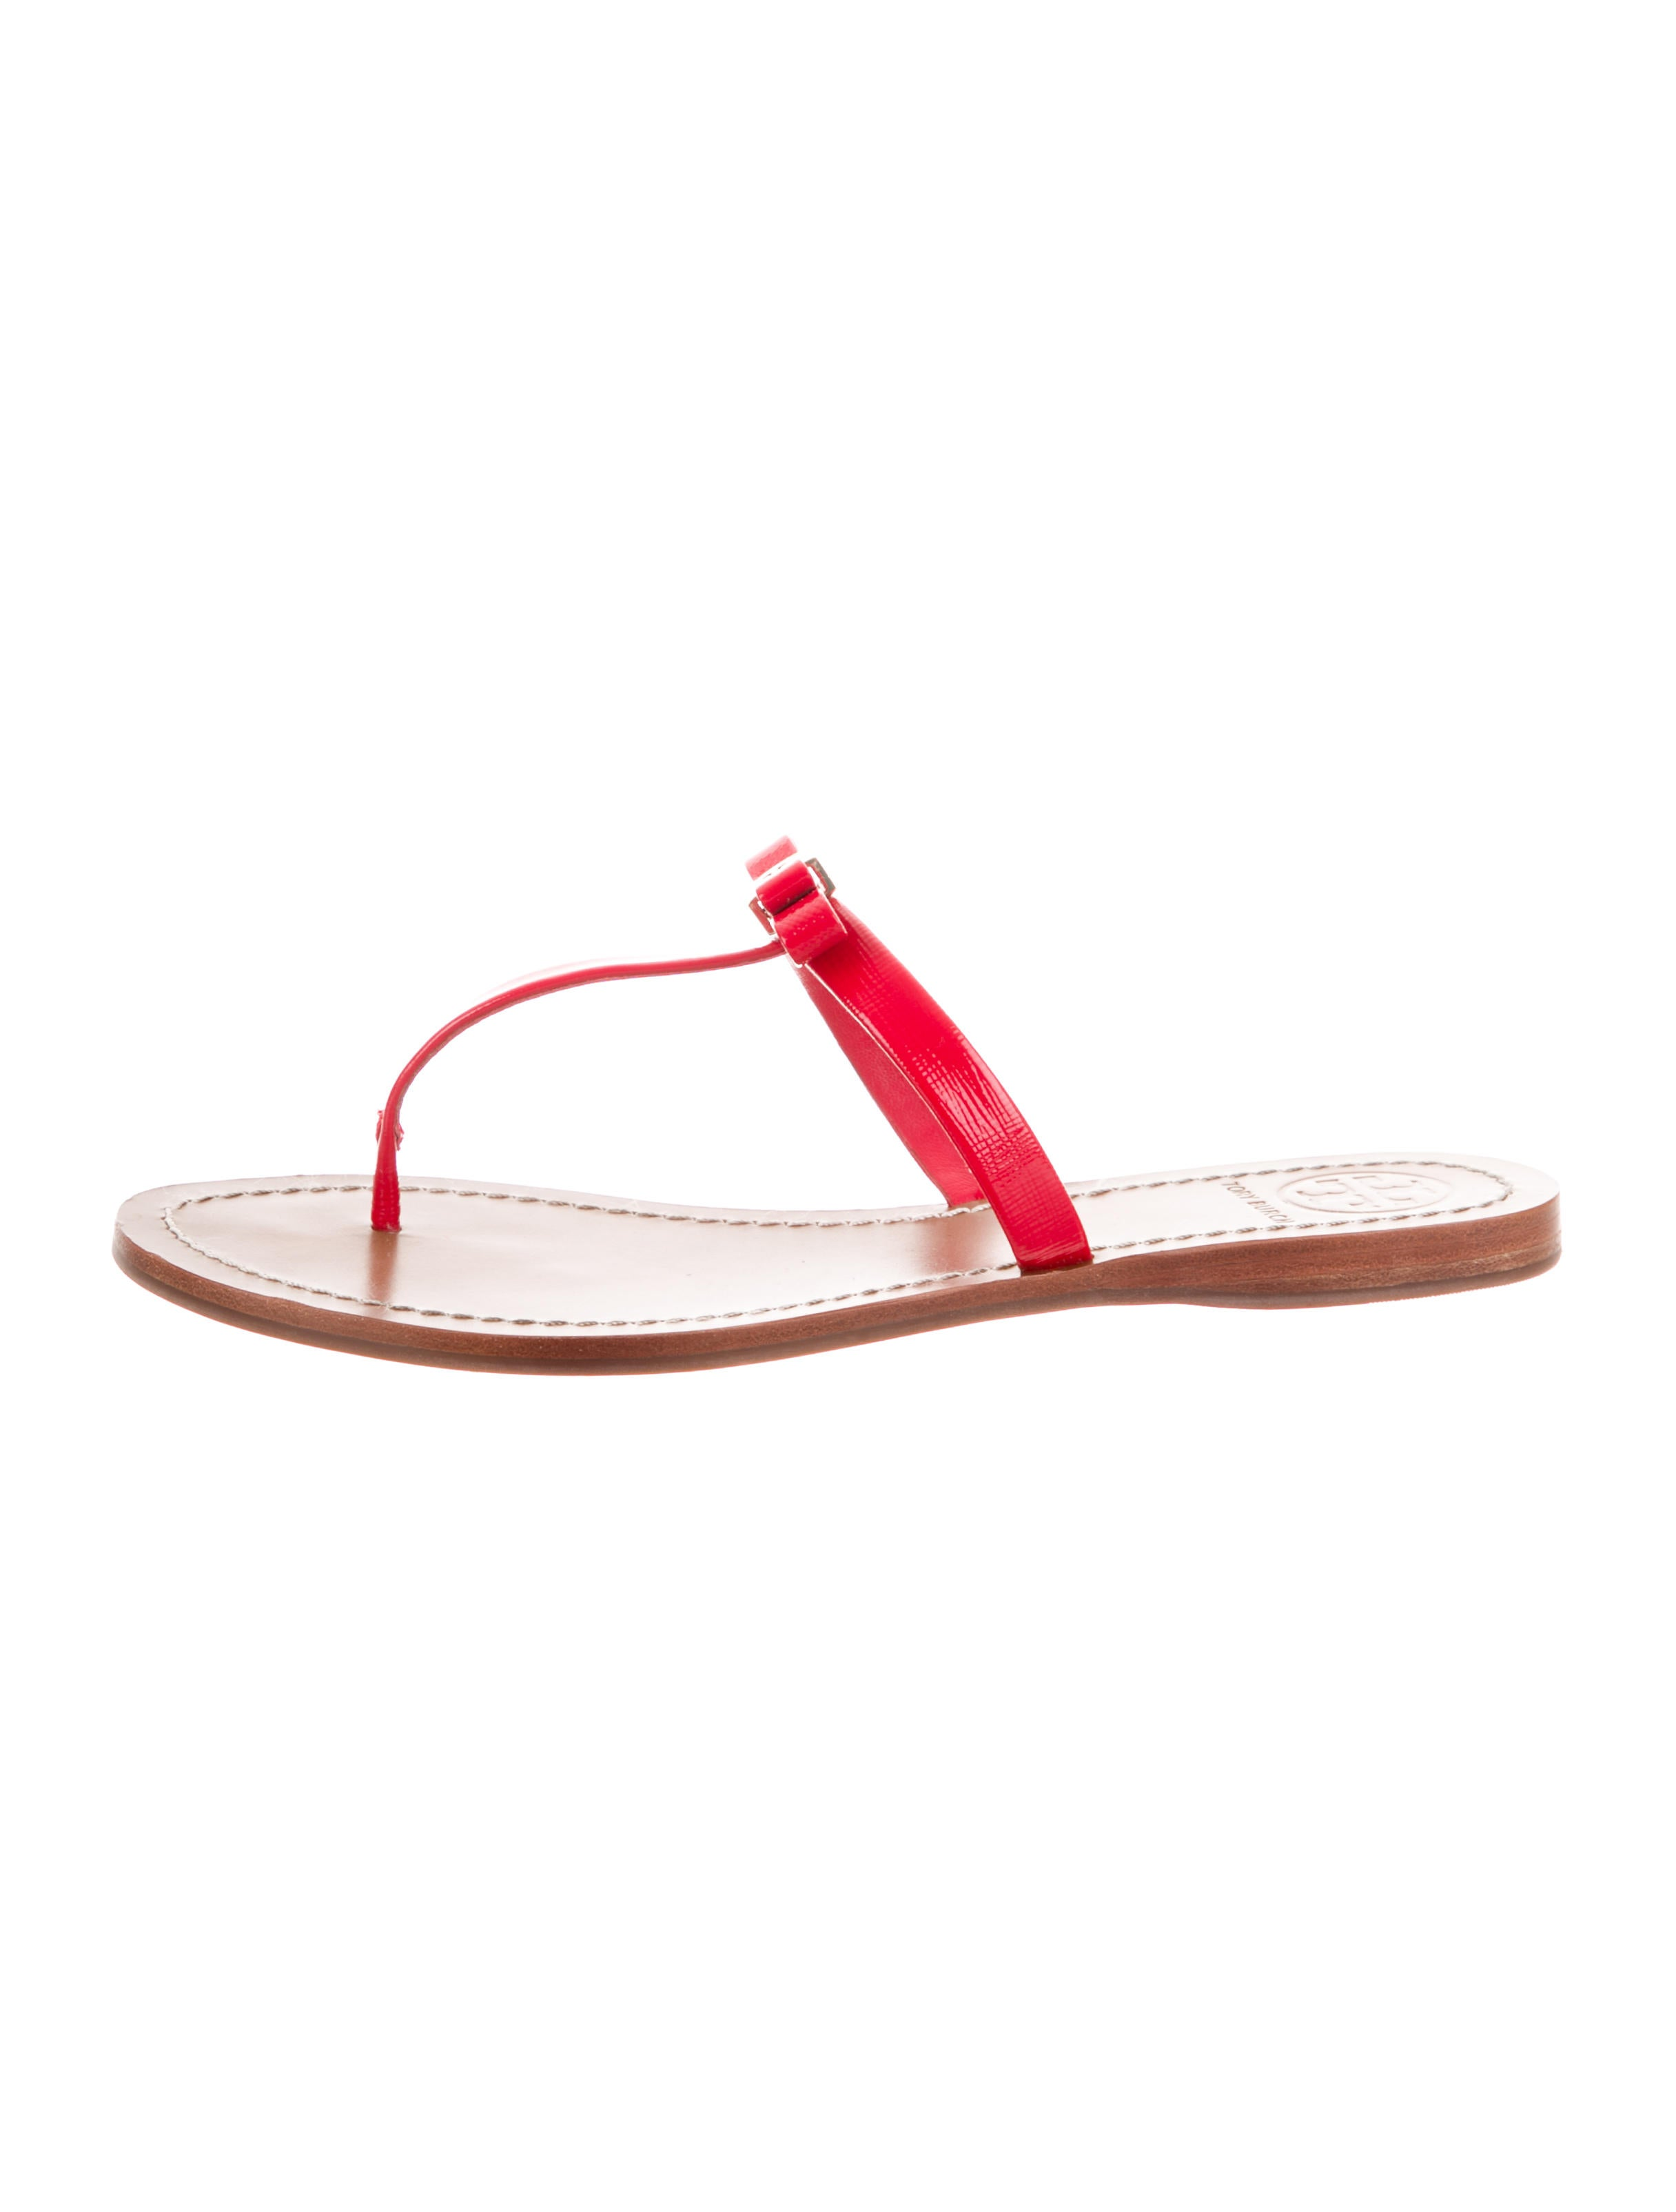 e6dc2c59567 Tory Burch Leighanne Thong Sandals - Shoes - WTO152742